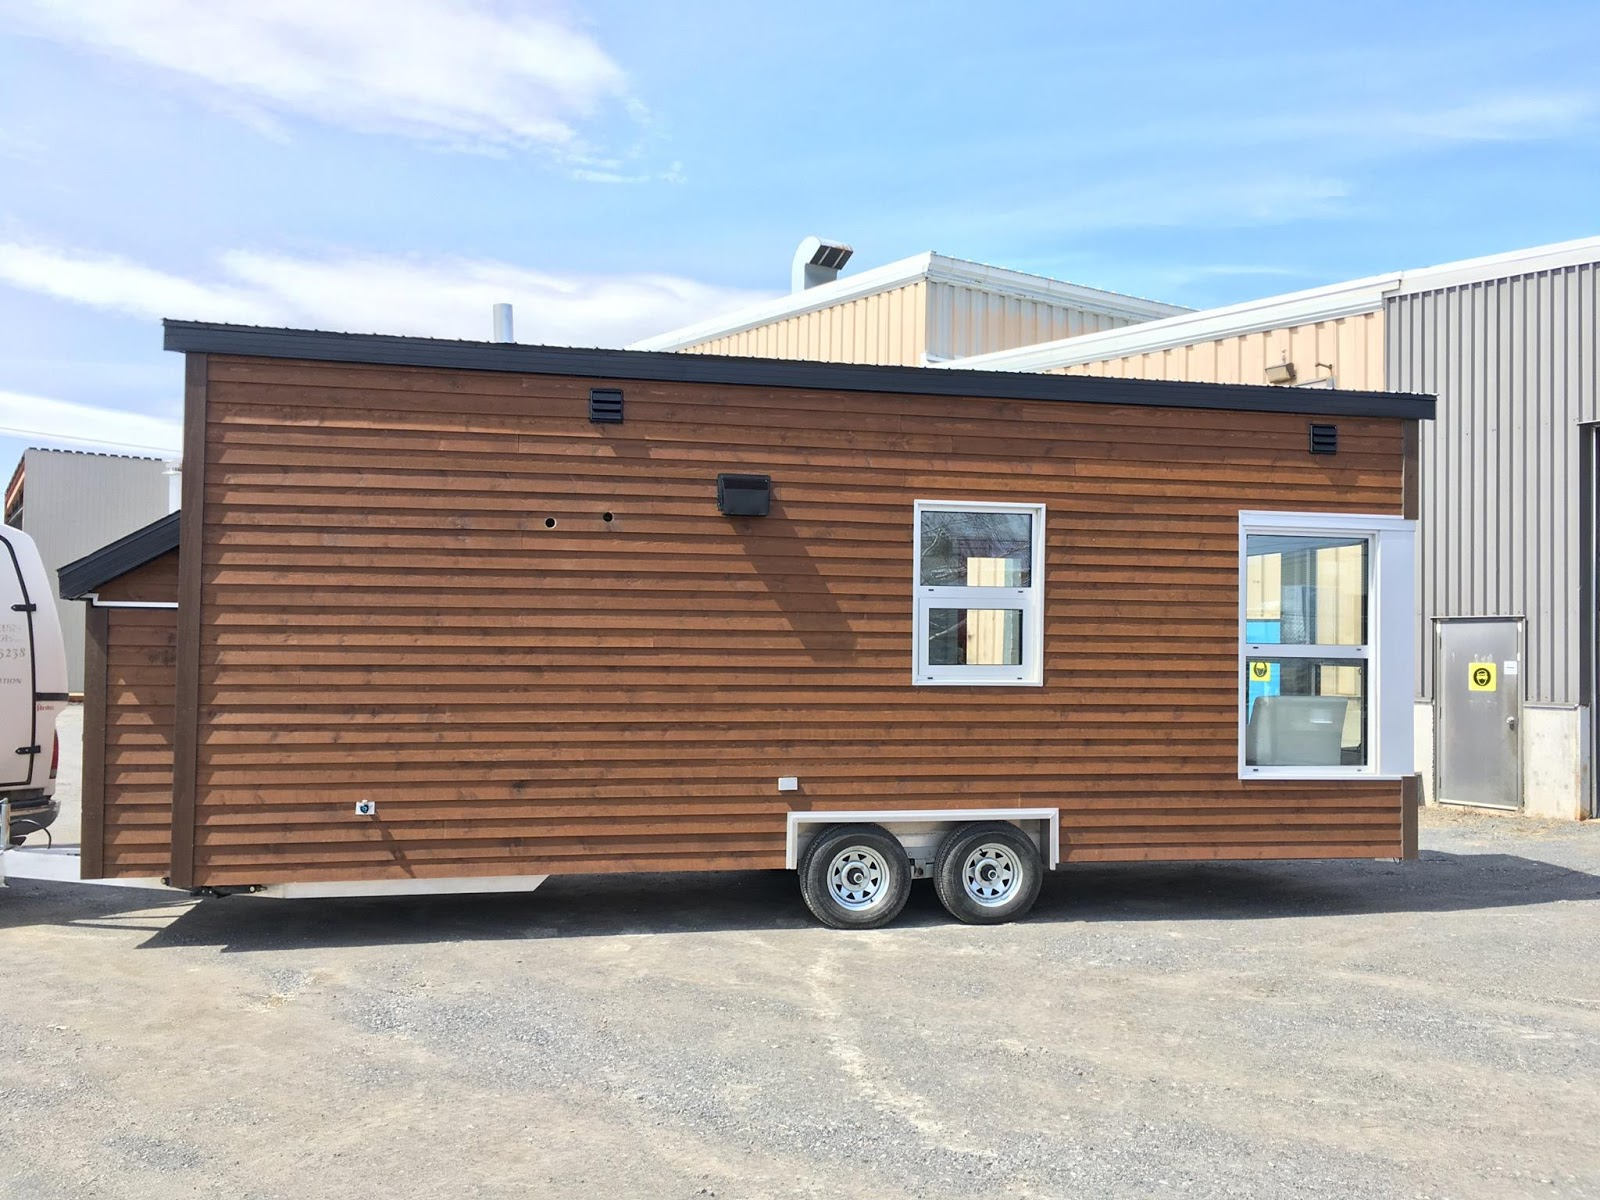 Follow Tiny House Town On Facebook For Regular Tiny House Updates Here!